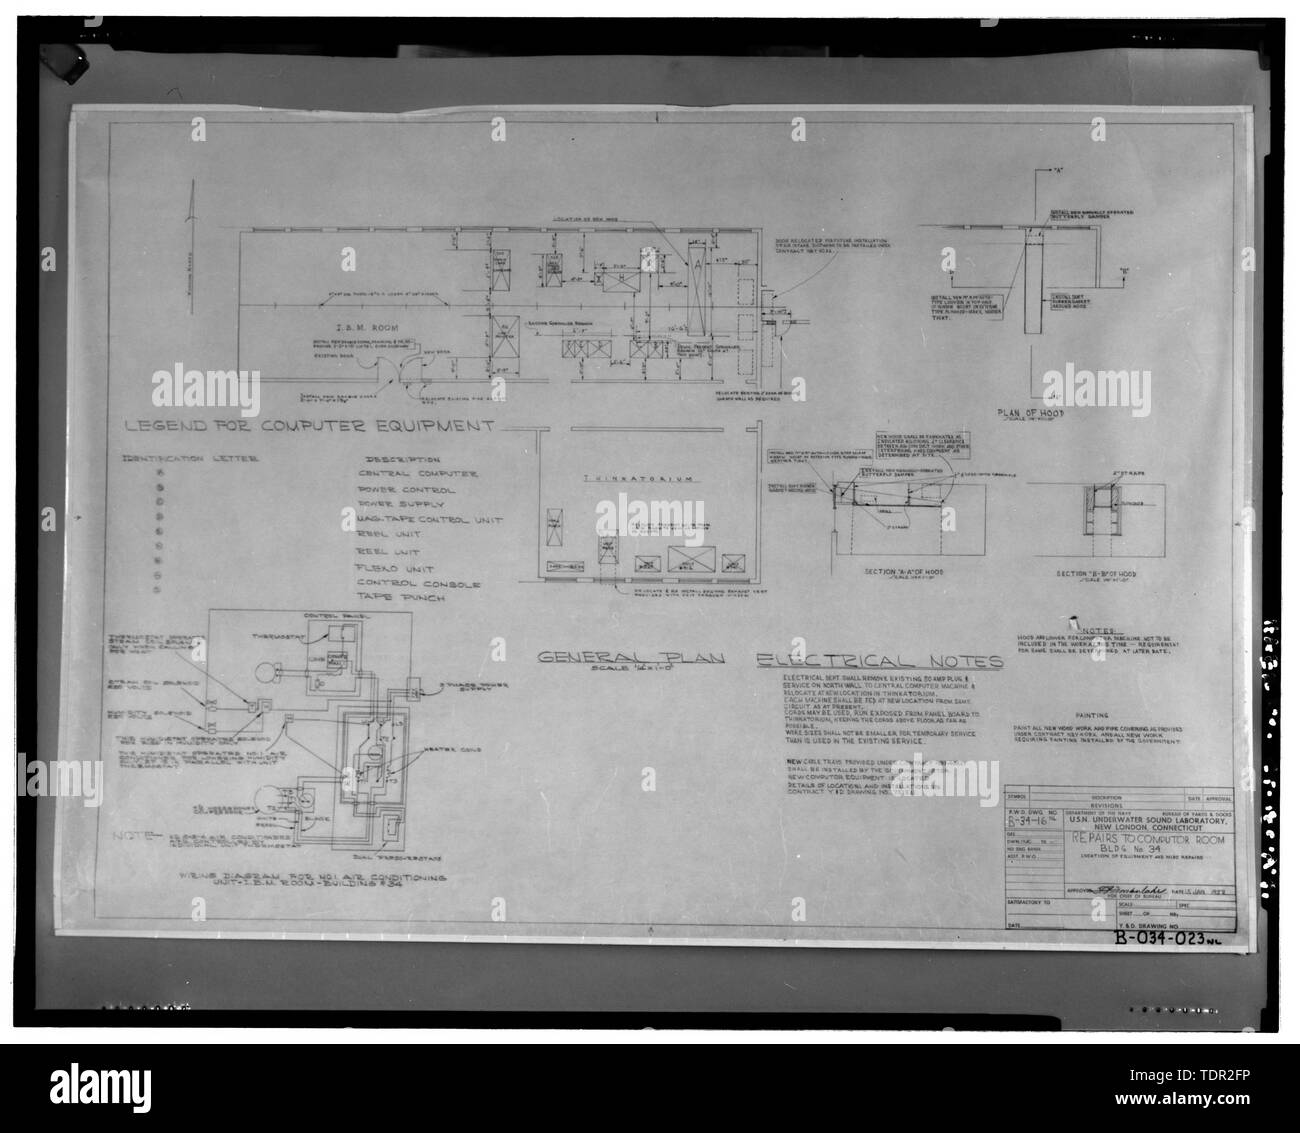 Photograph of plan for repairs to computer room, 1958, prepared by the Public Works Office, Underwater Sound Laboratory. Drawing on file at Caretaker Site Office, Naval Undersea Warfare Center, New London. Copyright-free. - Naval Undersea Warfare Center, Bowditch Hall, 600 feet east of Smith Street and 350 feet south of Columbia Cove, West bank of Thames River, New London, New London County, CT - Stock Image